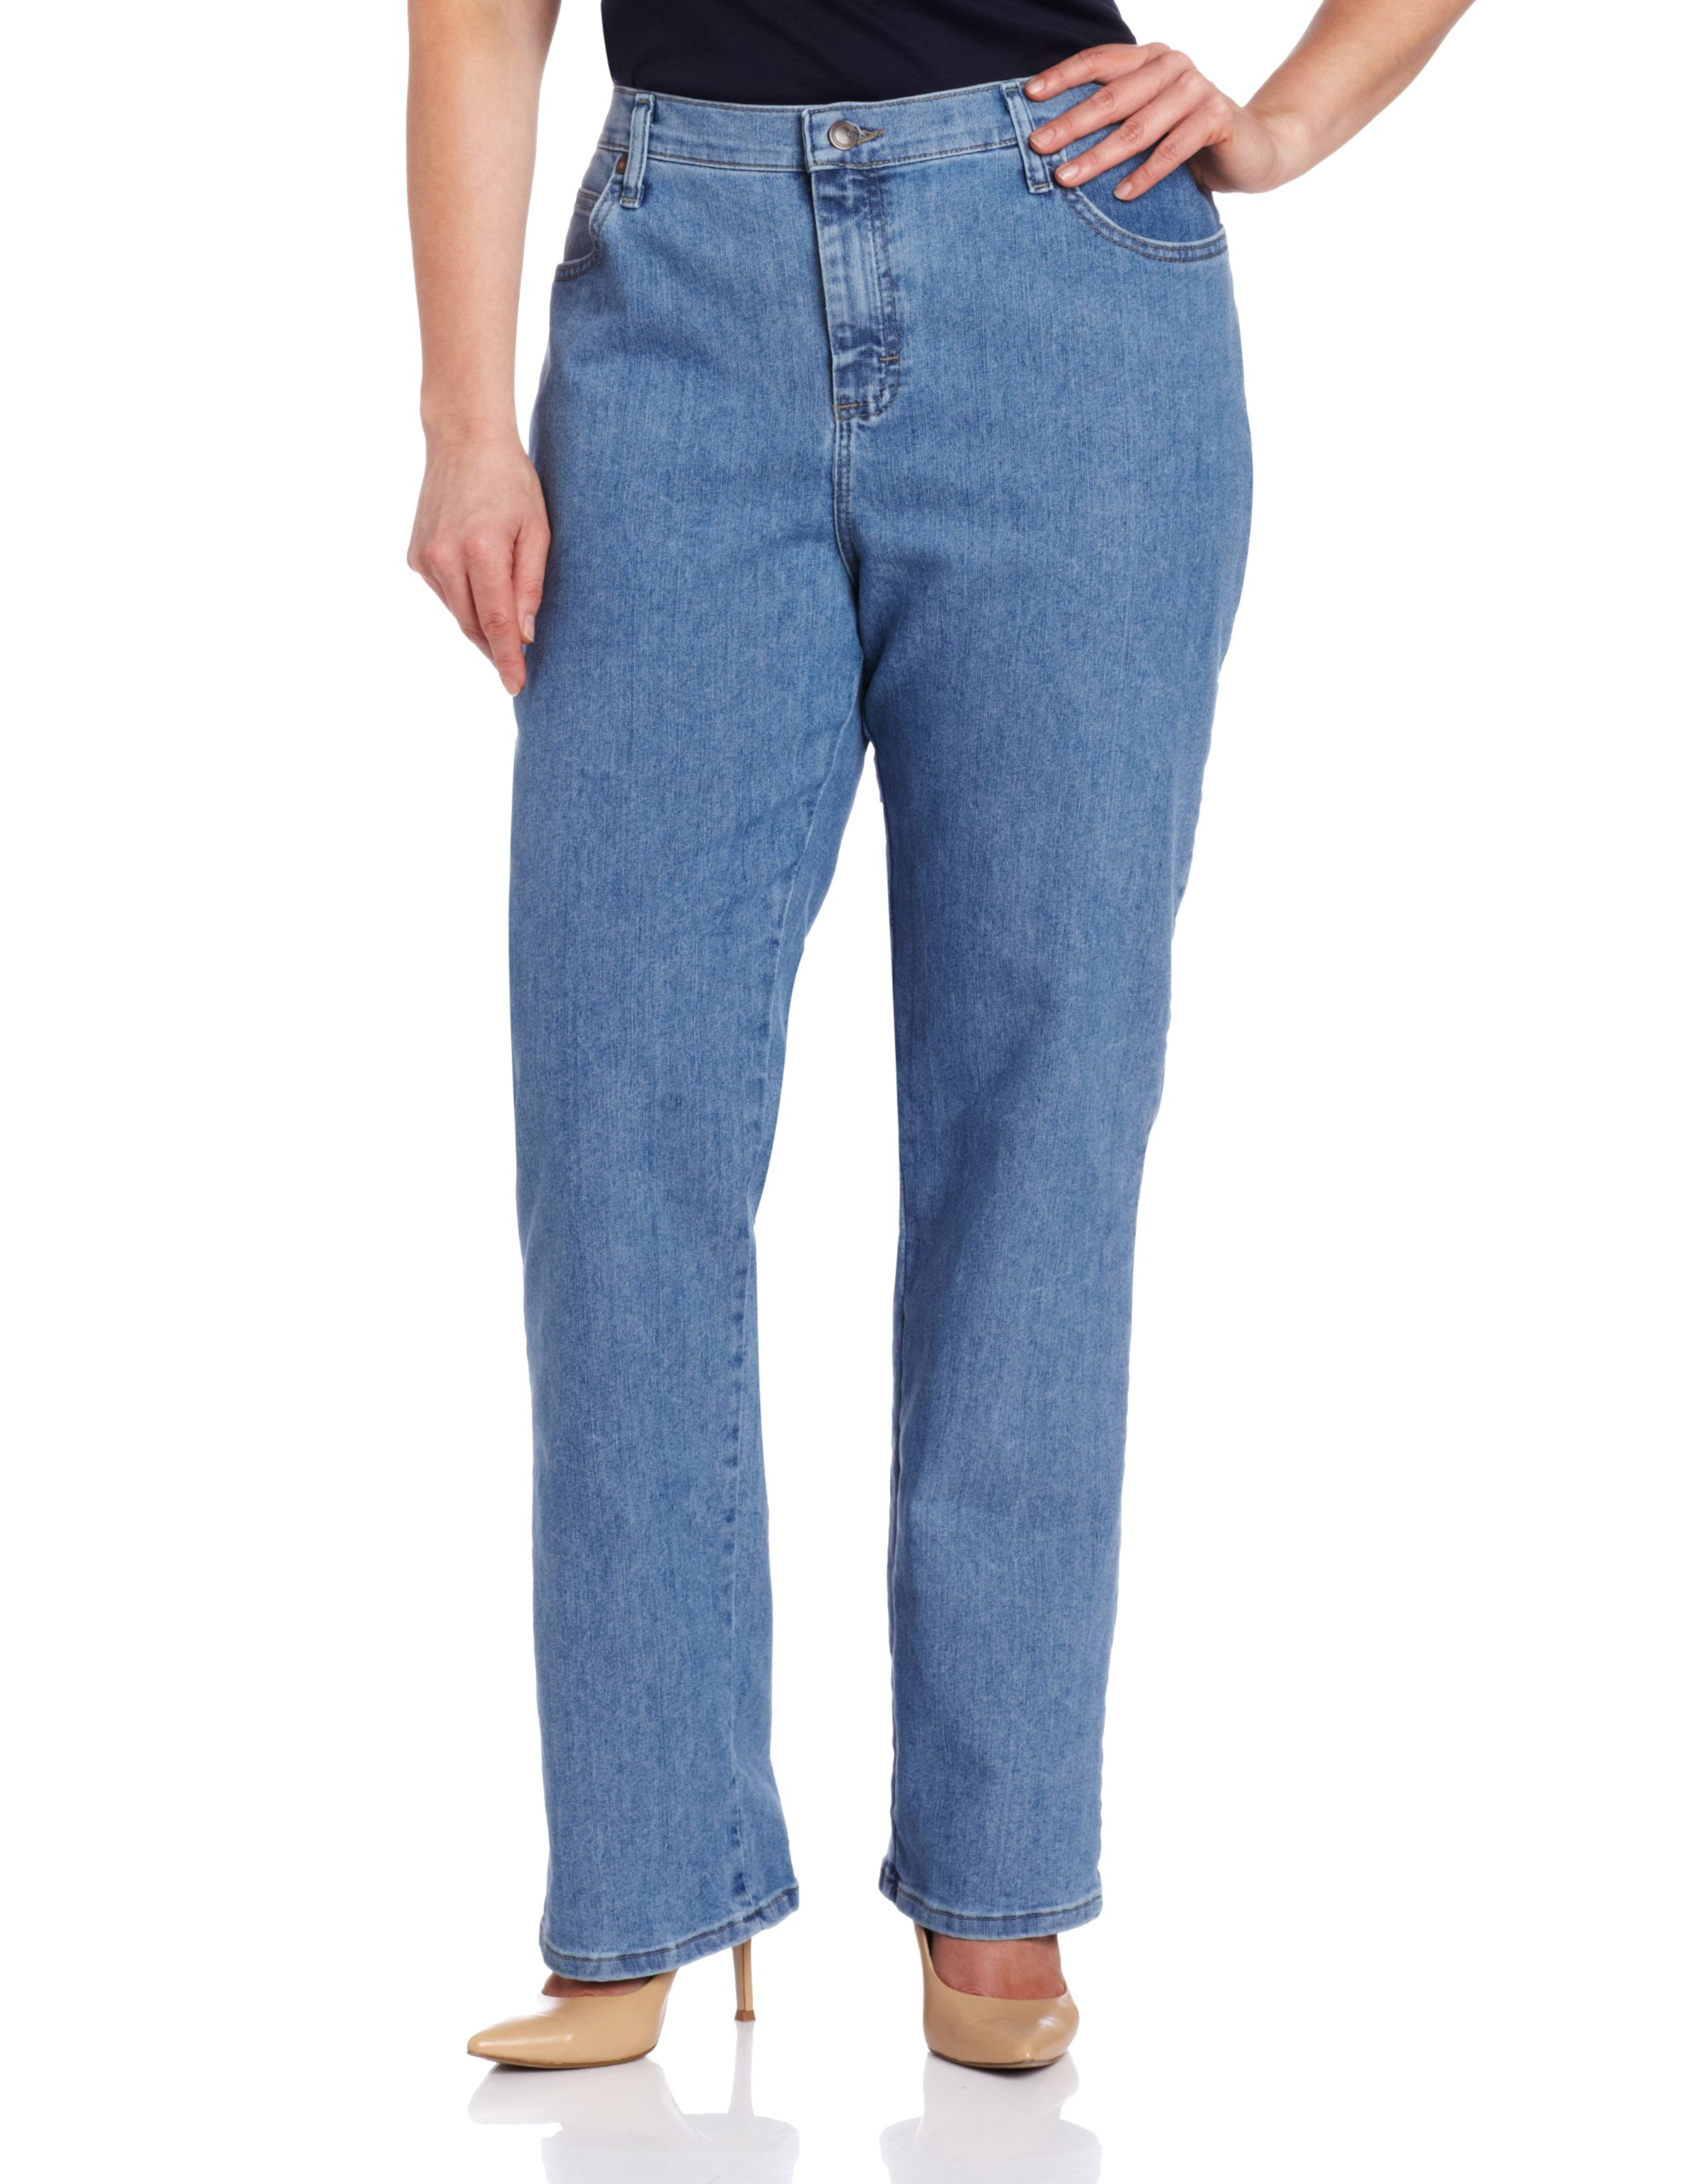 LEE Women's Plus-Size Relaxed Fit Straight Leg Jean, Premium Light, 30W Petite